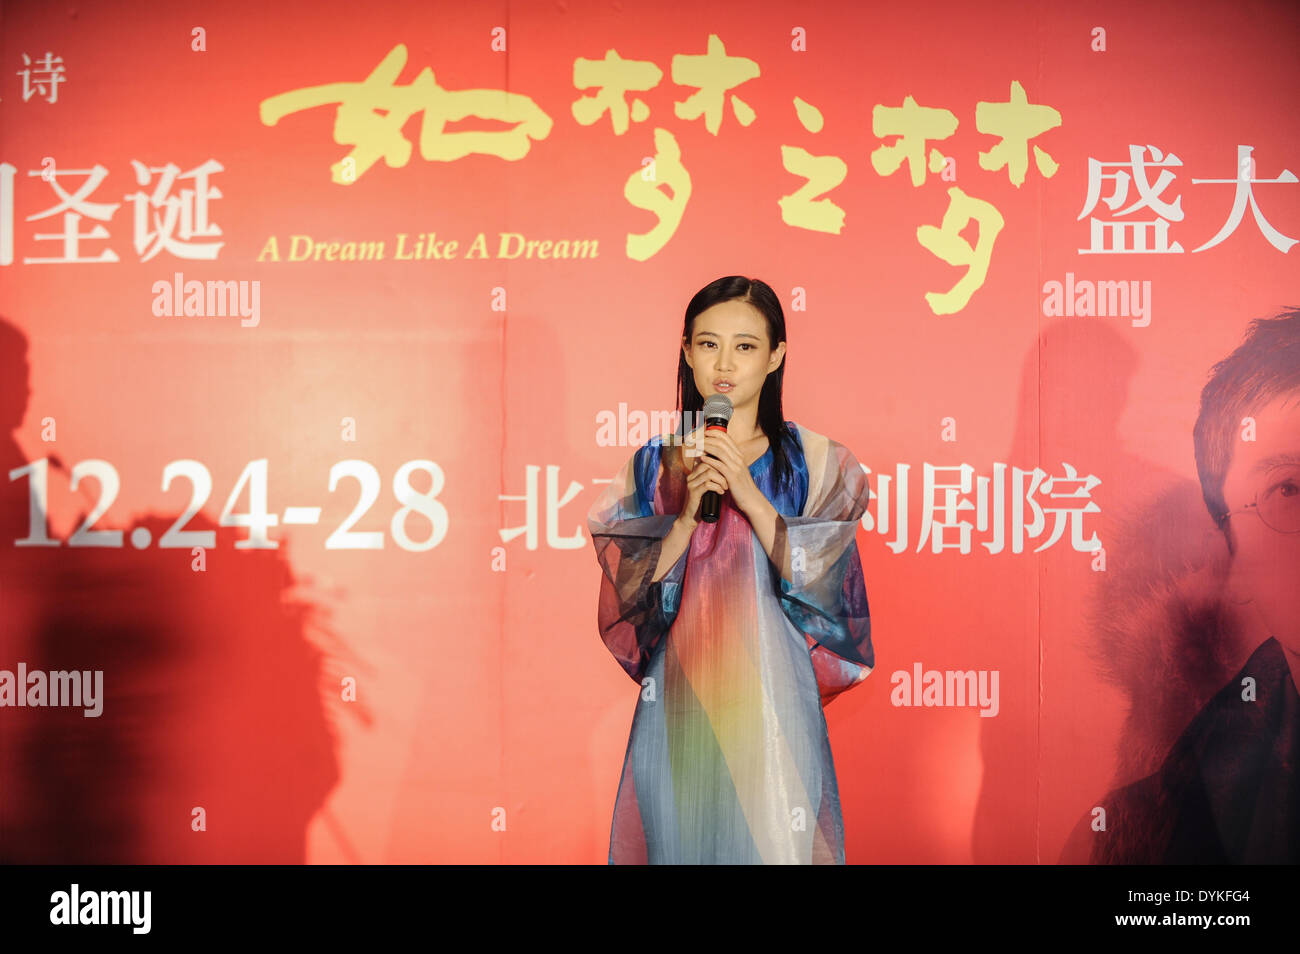 Beijing, Stan Lai, China. 28th Dec, 2014. Actress Tan Zhuo attends the press conference of the stage play 'A Dream like a Dream' in Beijing, capital of China, April 21, 2014. The stage play, directed by Stan Lai, will be shown at Beijing's Poly Theater from Dec. 24 to Dec. 28, 2014. © Li Yan/Xinhua/Alamy Live News - Stock Image